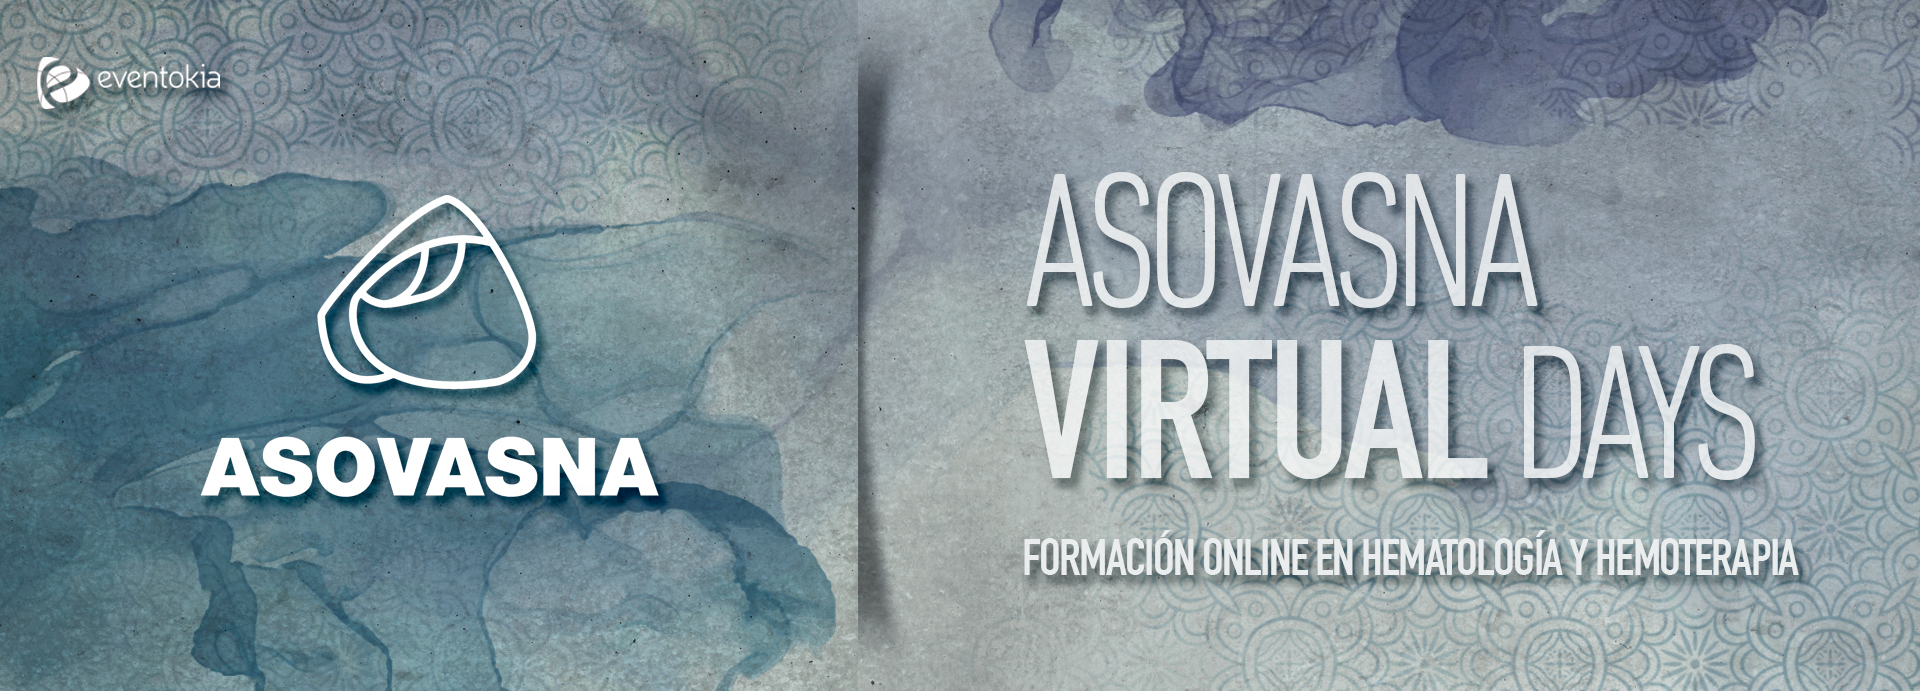 Asovasna Virtual Days